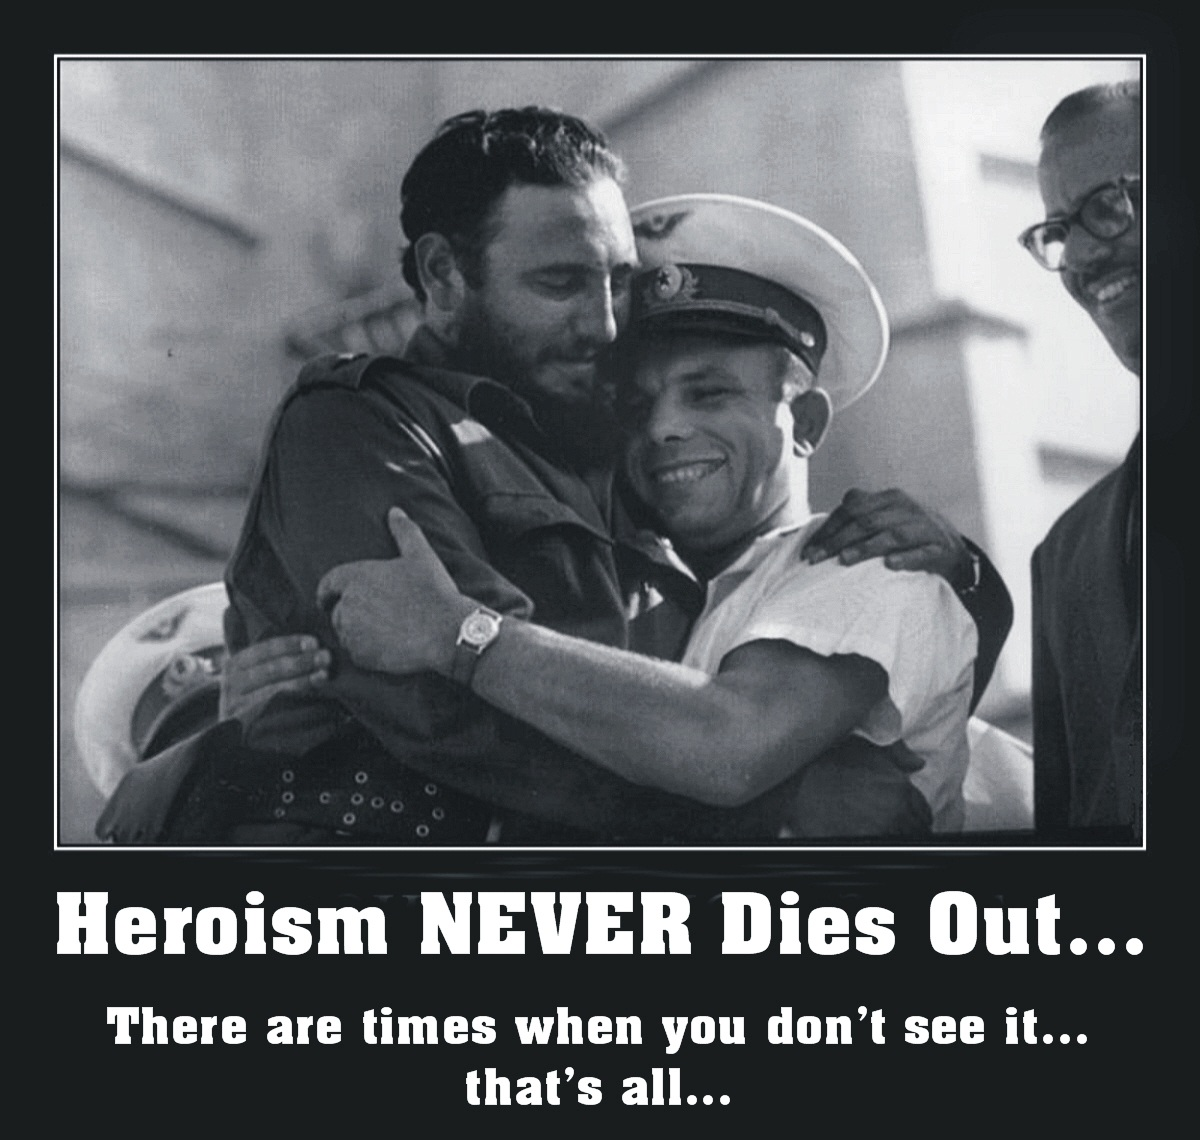 00 Heroism NEVER Dies Out... Castro and Gagarin